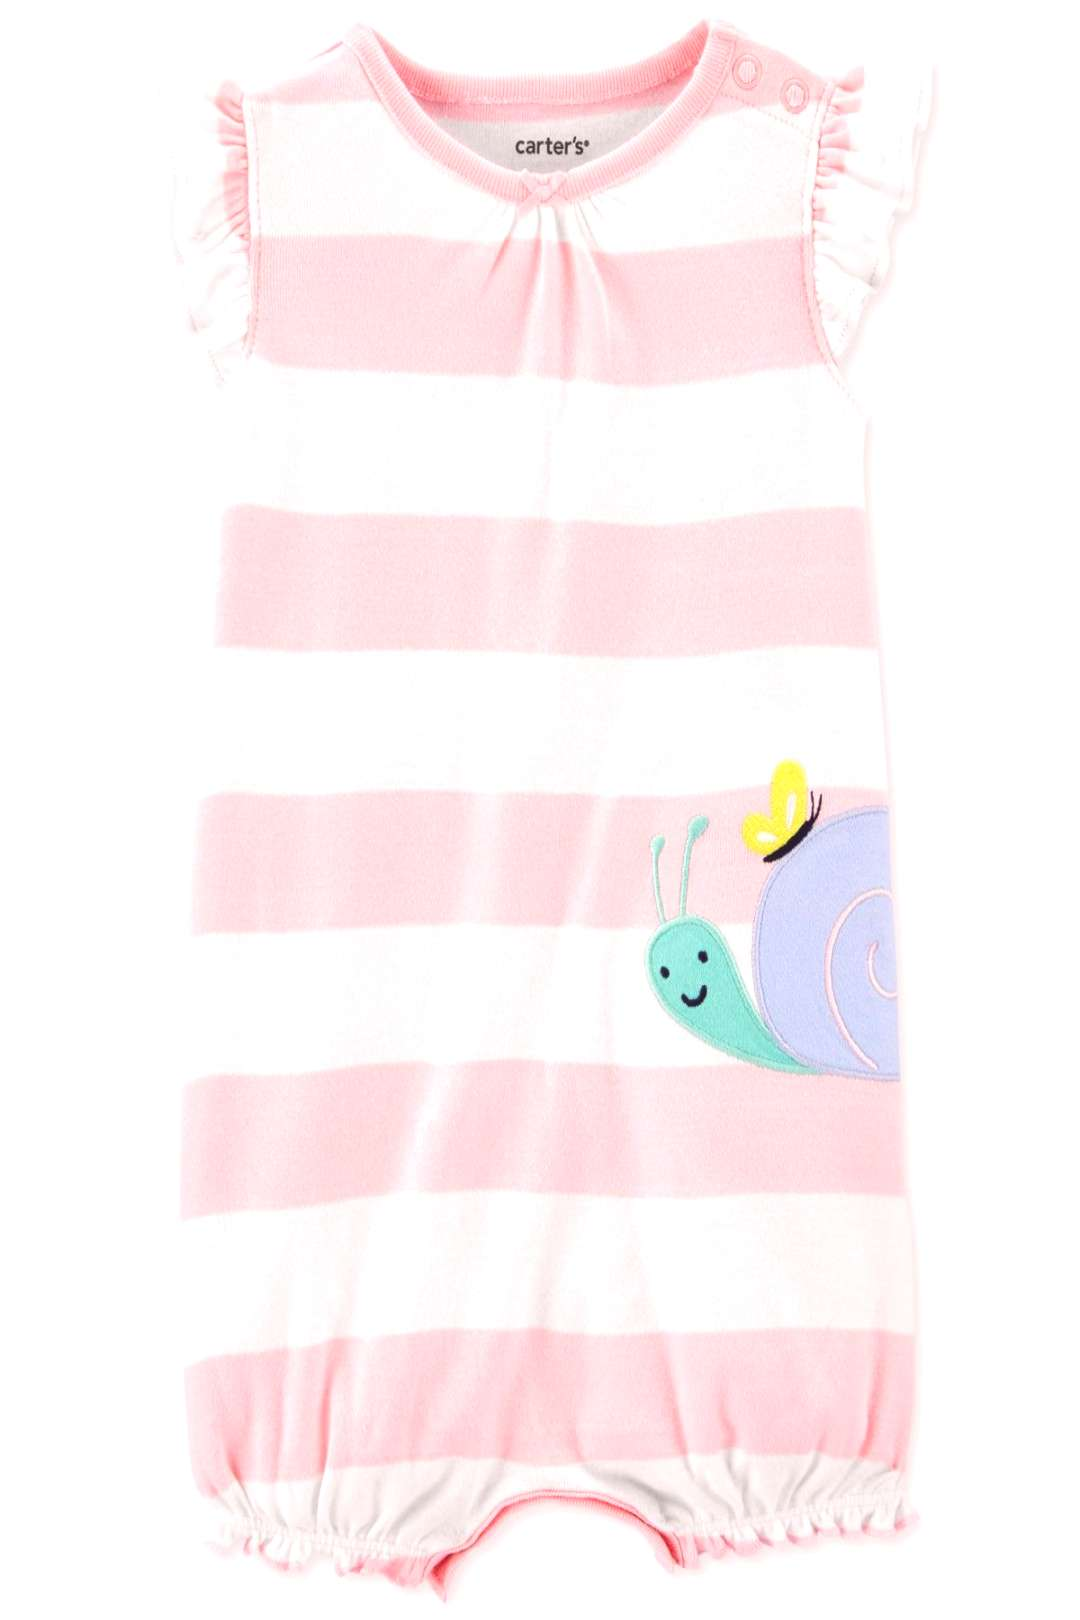 Carter's Baby Girls Striped Snail Cotton Romper - Pink